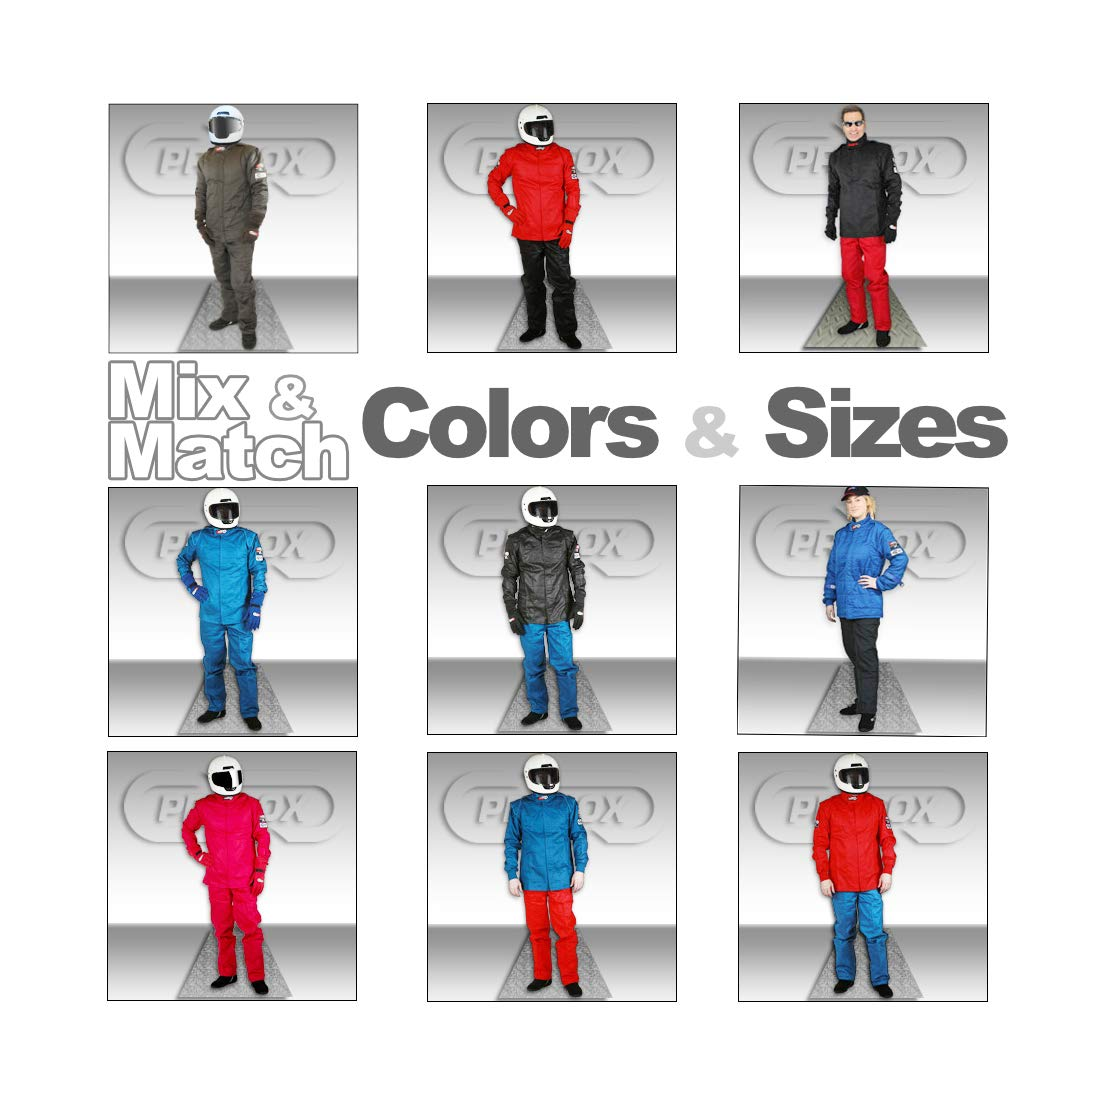 PROFOX-102 Blue Large-Tall Jacket Auto Racing Fire Resistant Single Layer SFI 3.2A//1 Racing Fire Suit Jacket only